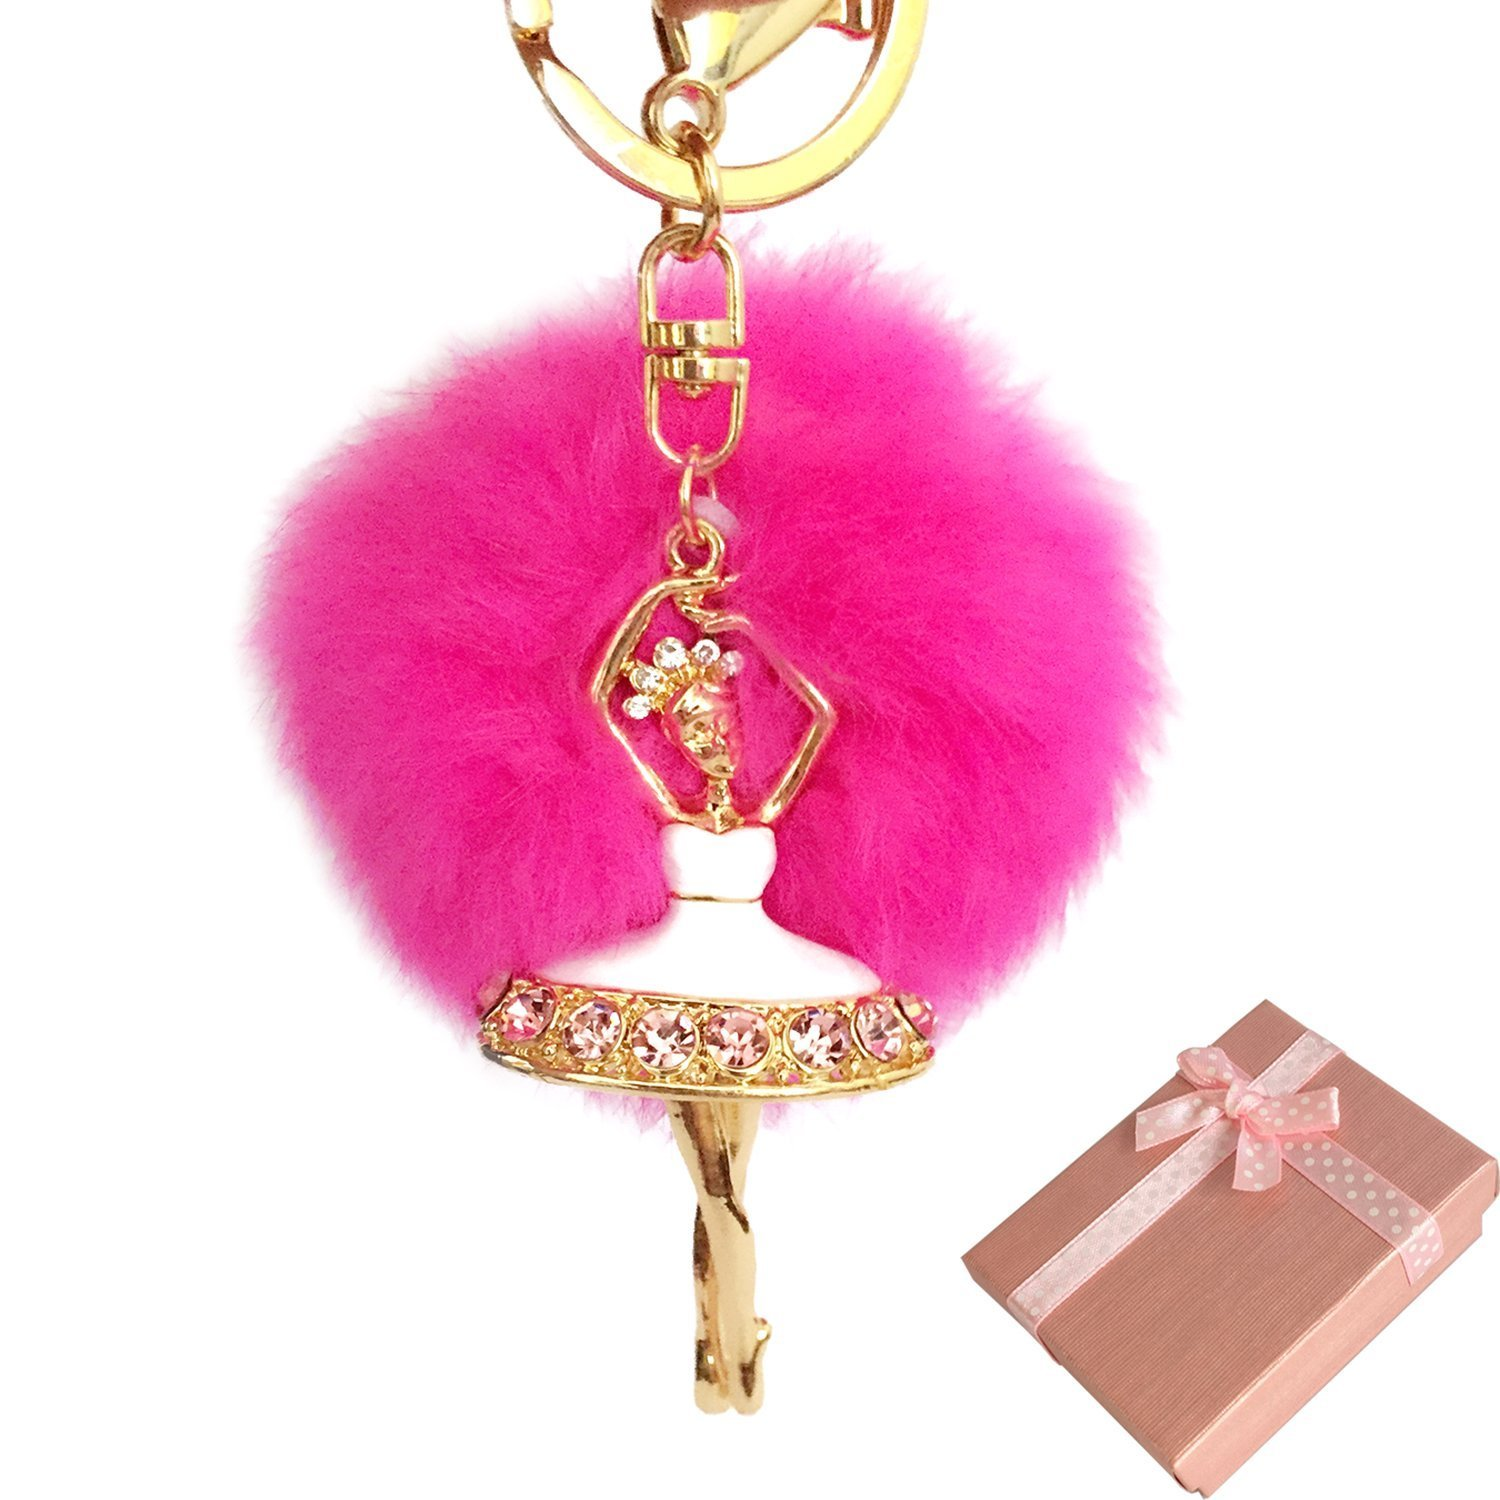 Elesa Miracle Girl Women Fur Ball Rhinestone Ballerina Keychain, Ballet Dancing Girl Handbag Accessories, Car Key Chain Rings (Hot Pink)